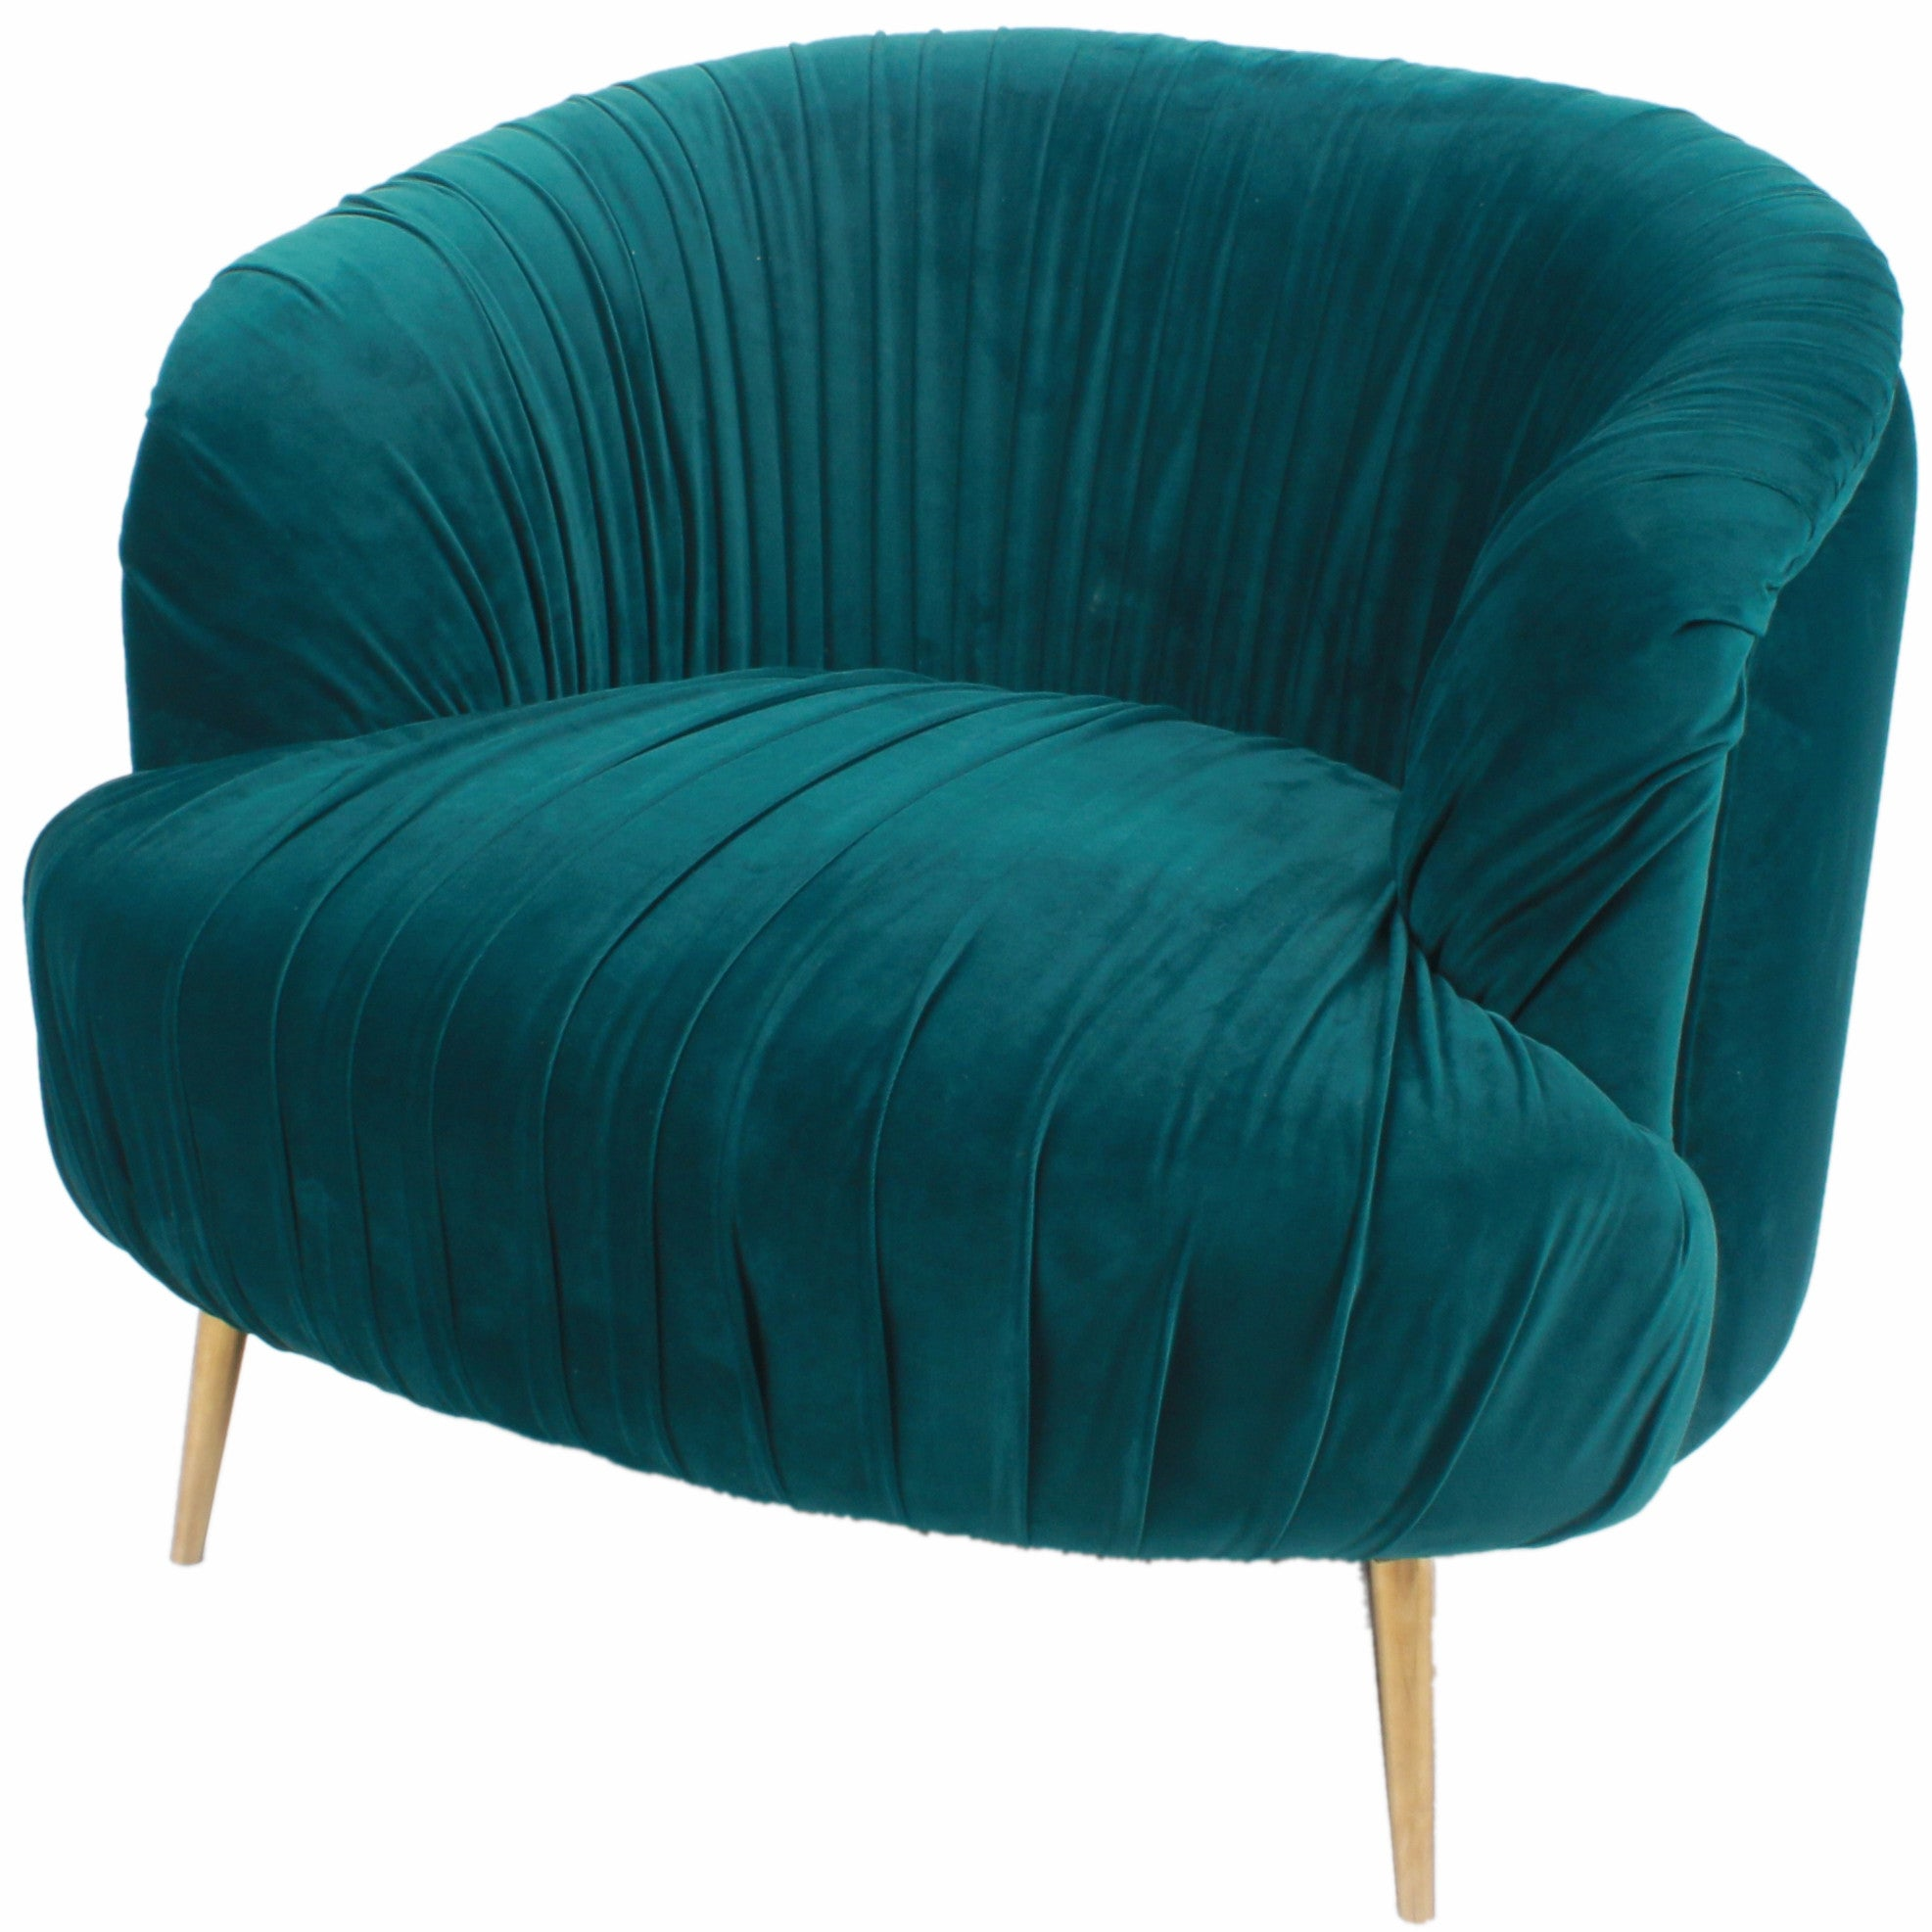 Dana Point Accent Chair EMERALD